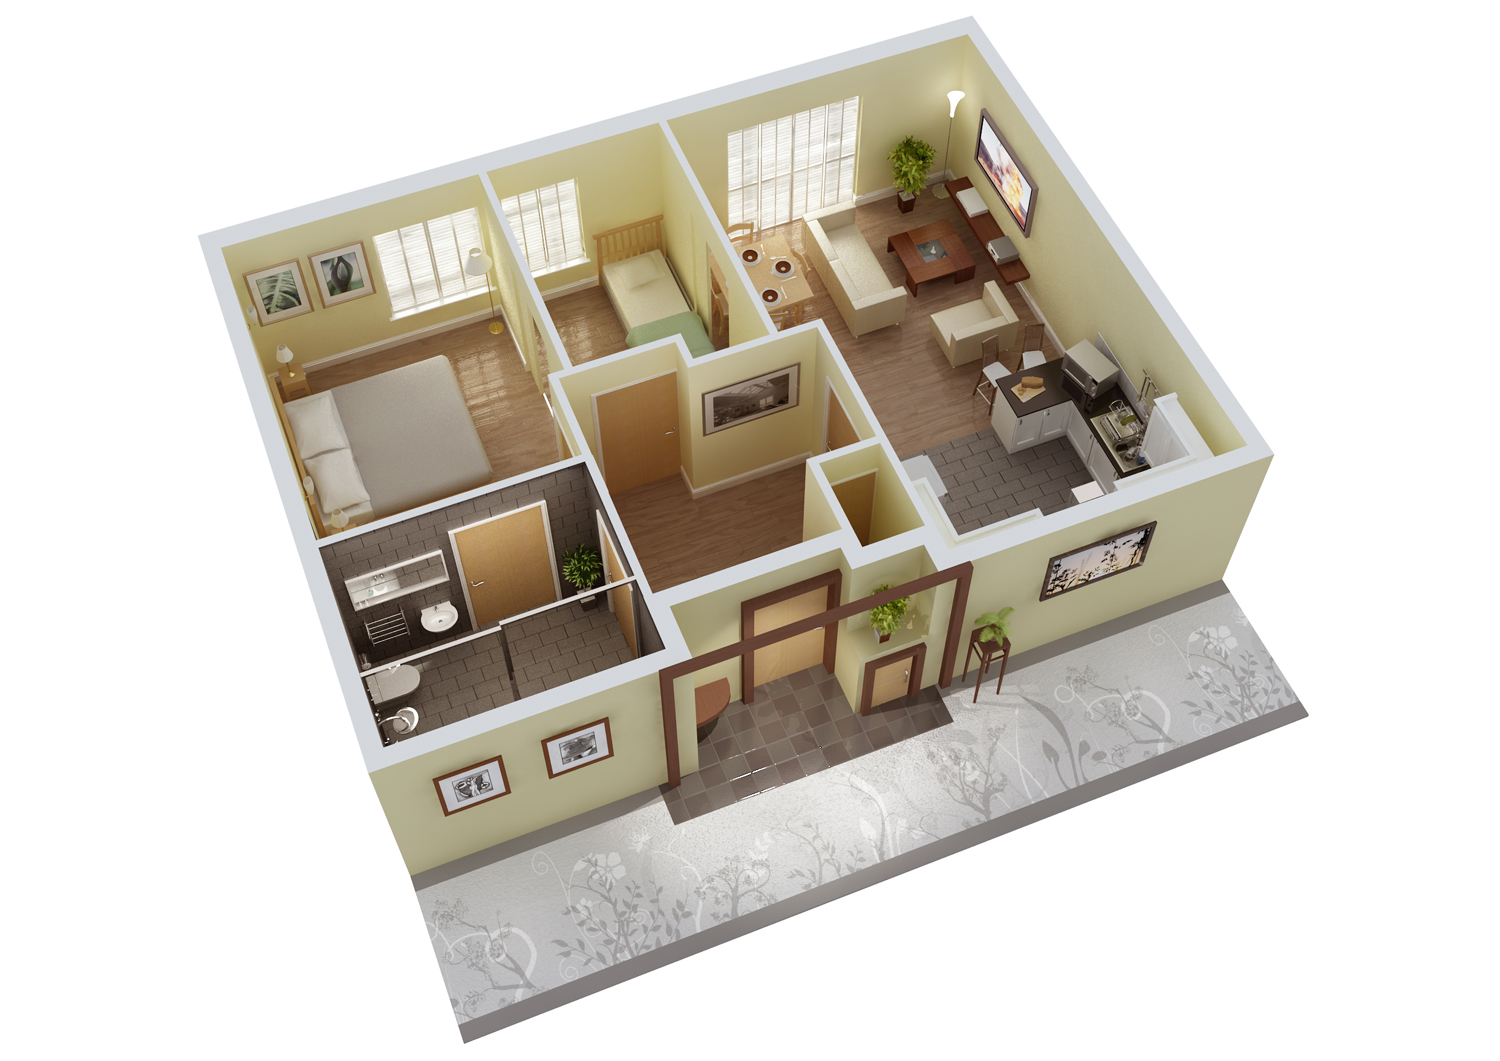 Mathematics resources project 3d floor plan for House design plan 3d